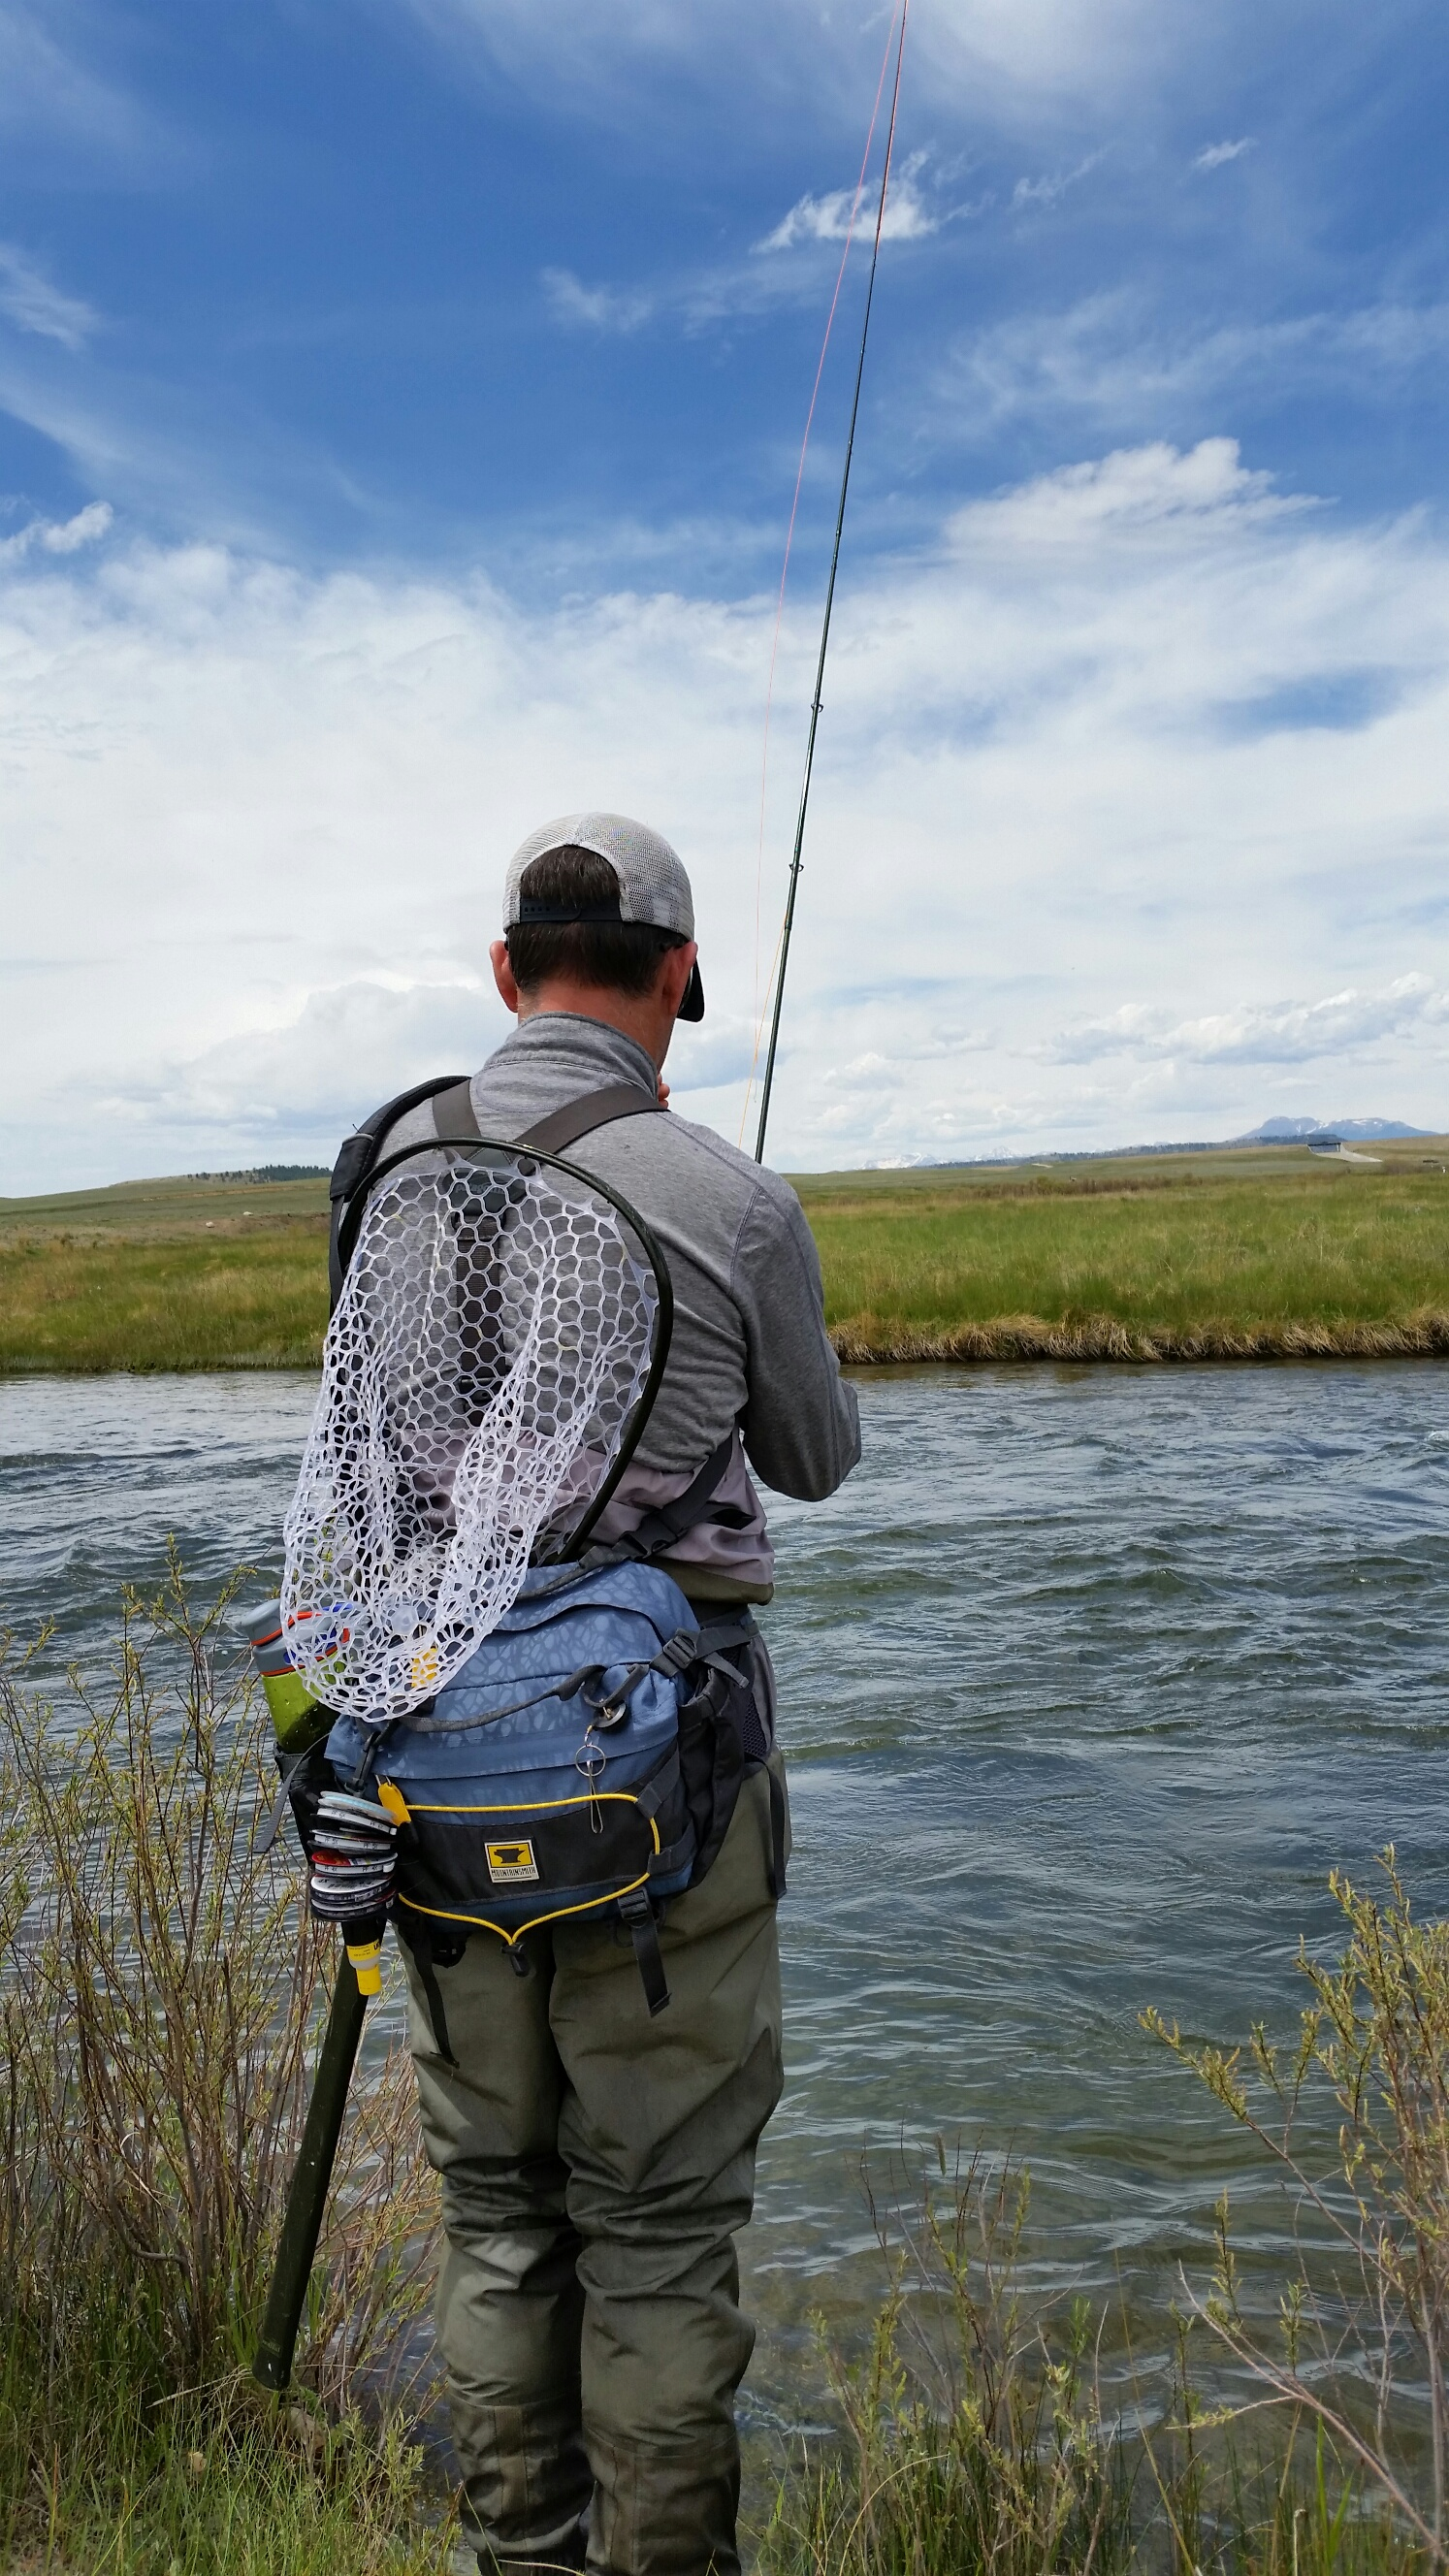 Keith Reis wearing his Mountainsmith Tour TLS Lumbar Pack as he stalks the river banks.